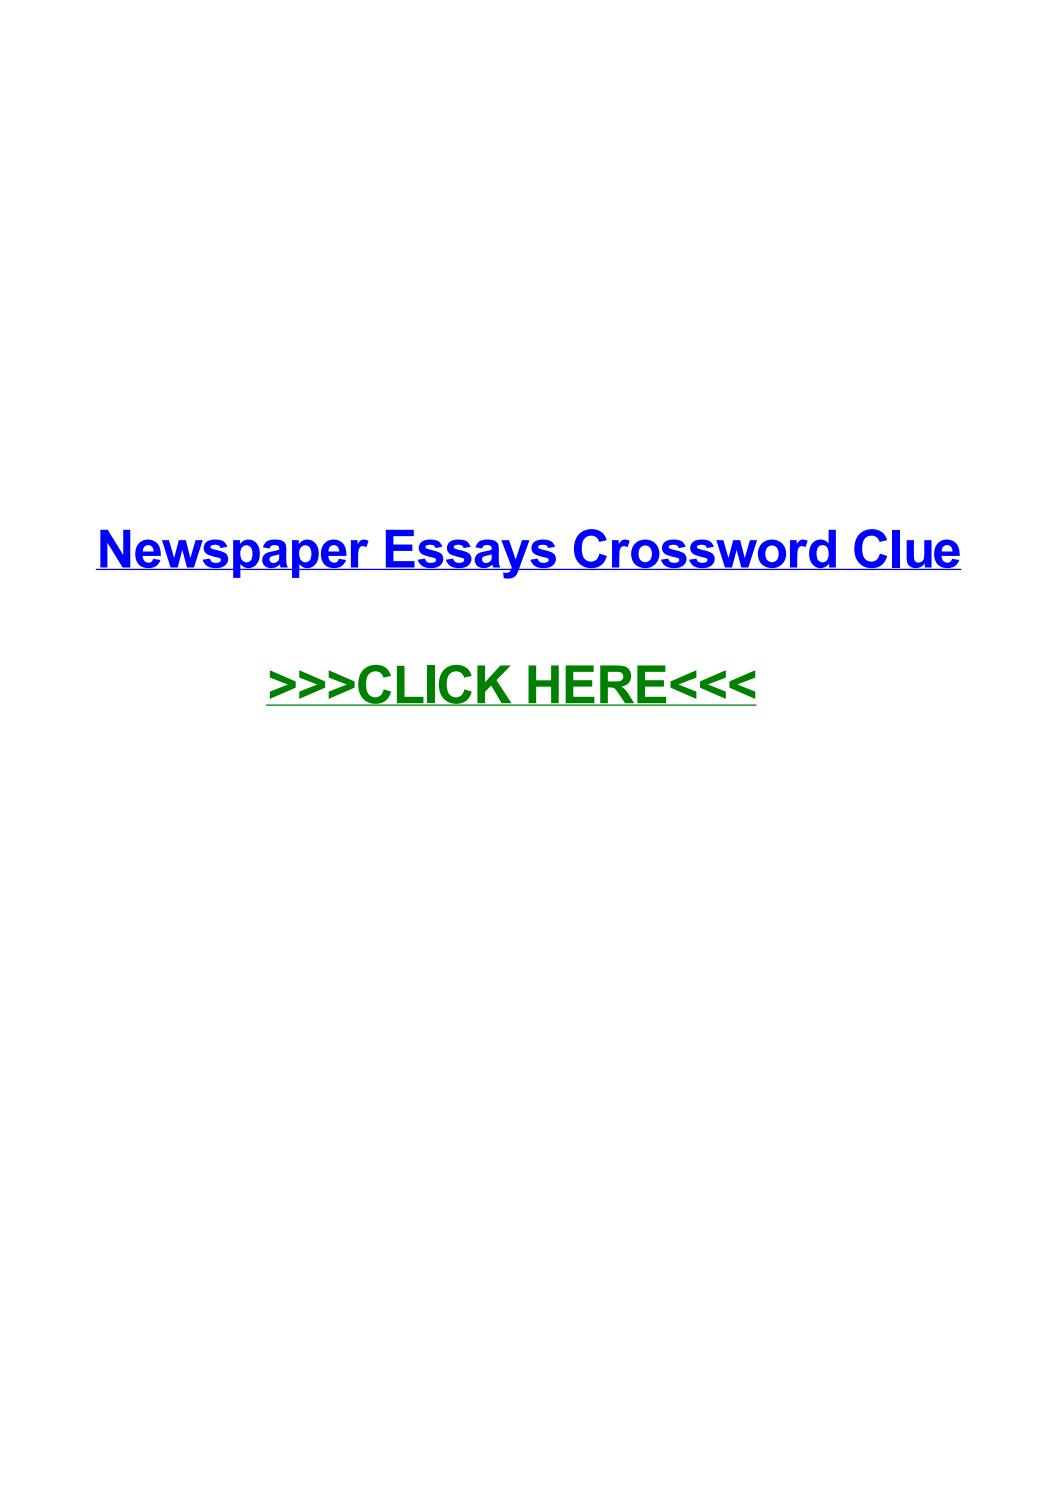 016 Political Essay Crossword Page 1 Dreaded Clue Full